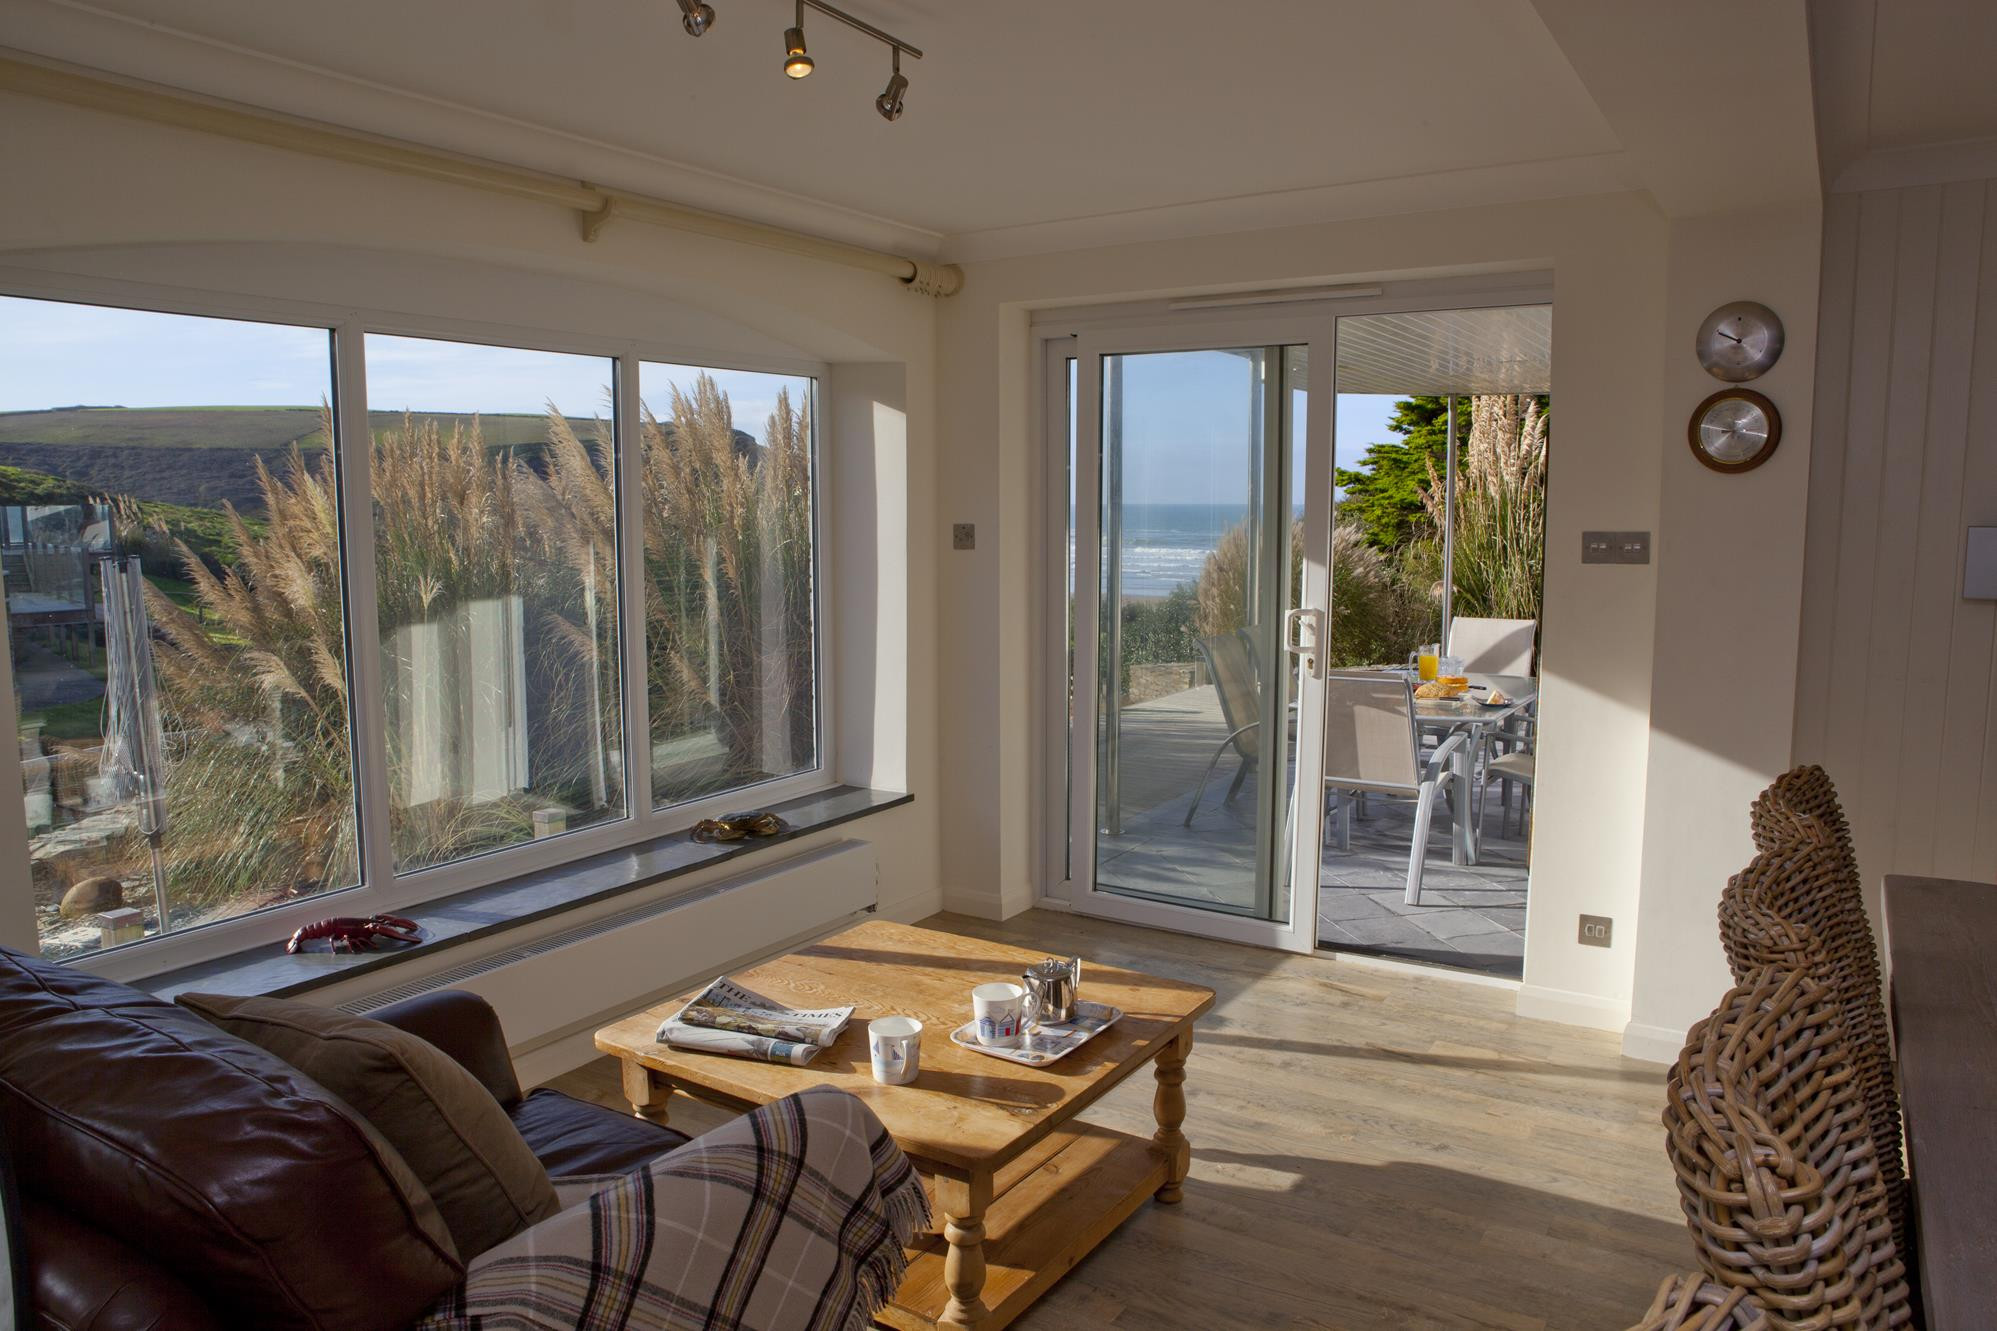 maxcare hardwood floors of waters edge mawgan porth cornwall perfect stays for waters edge img 62761